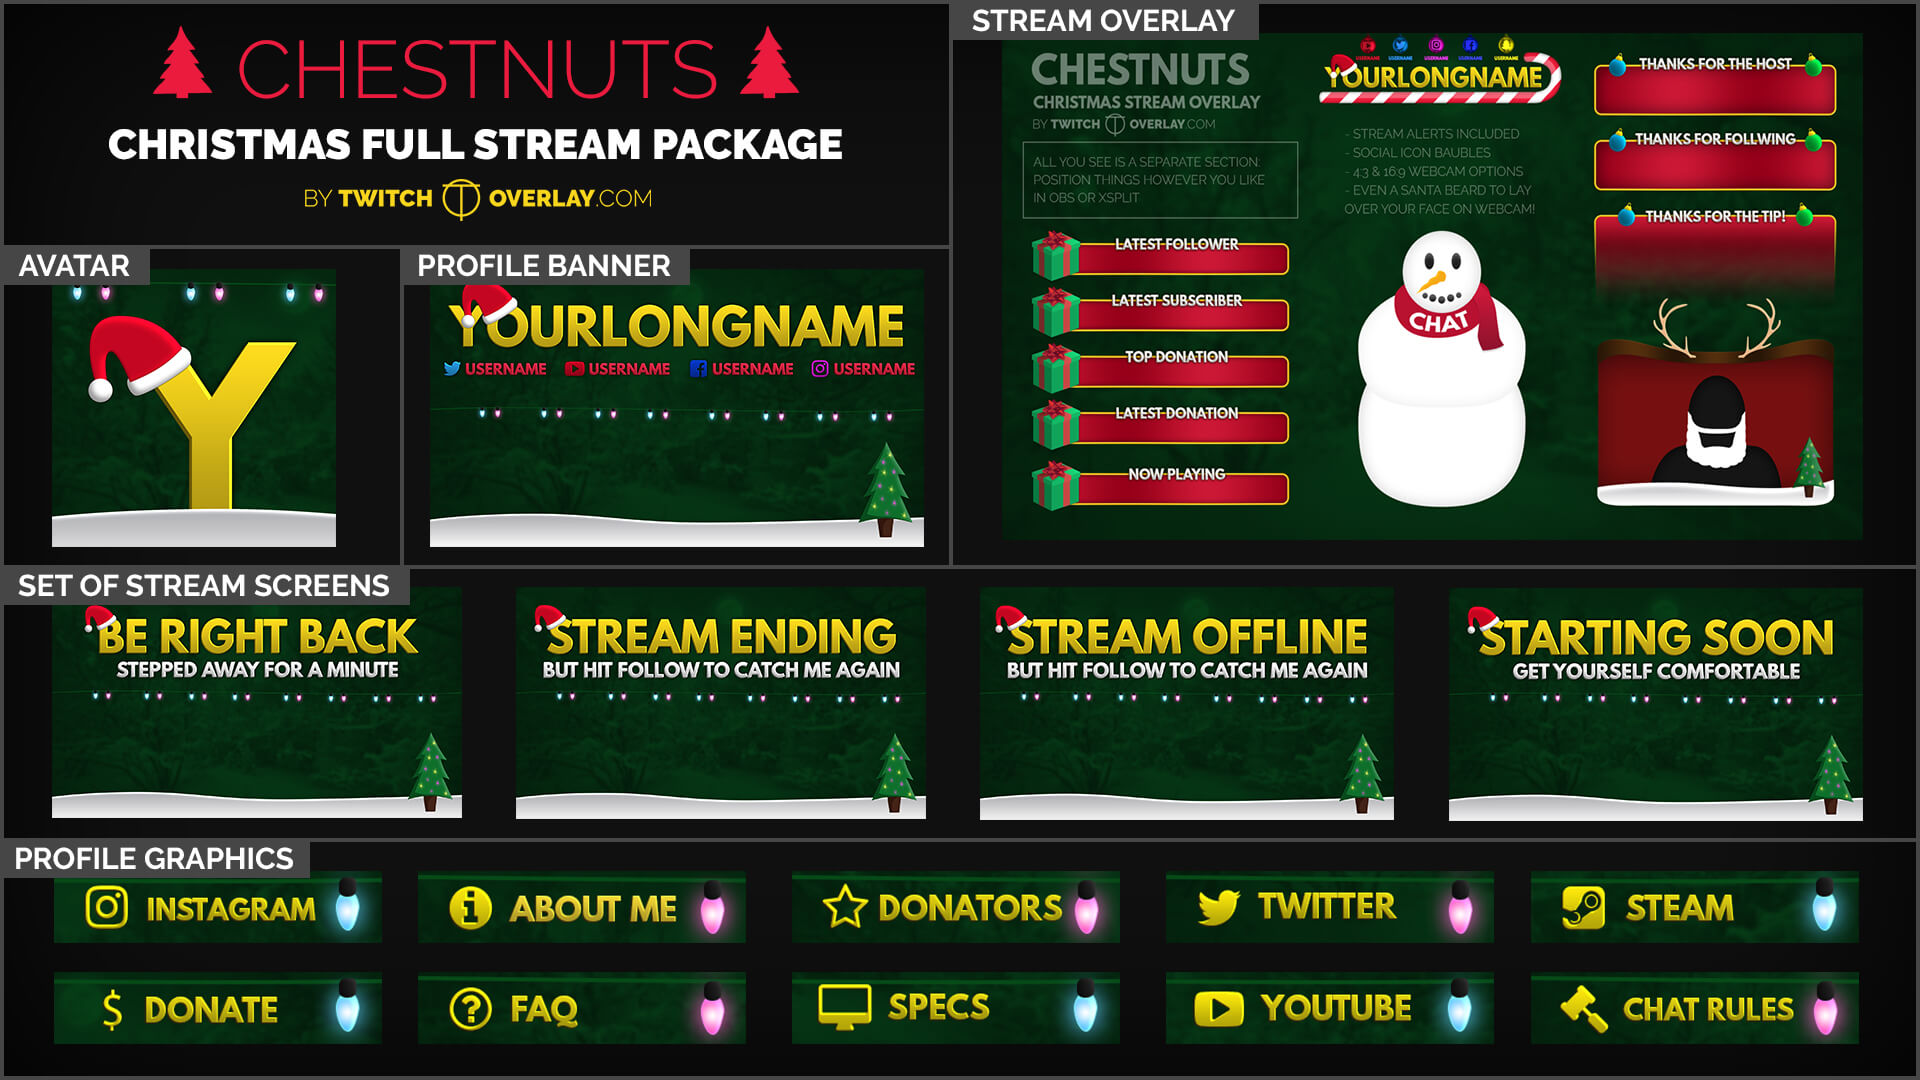 Chestnuts - Christmas Stream Package